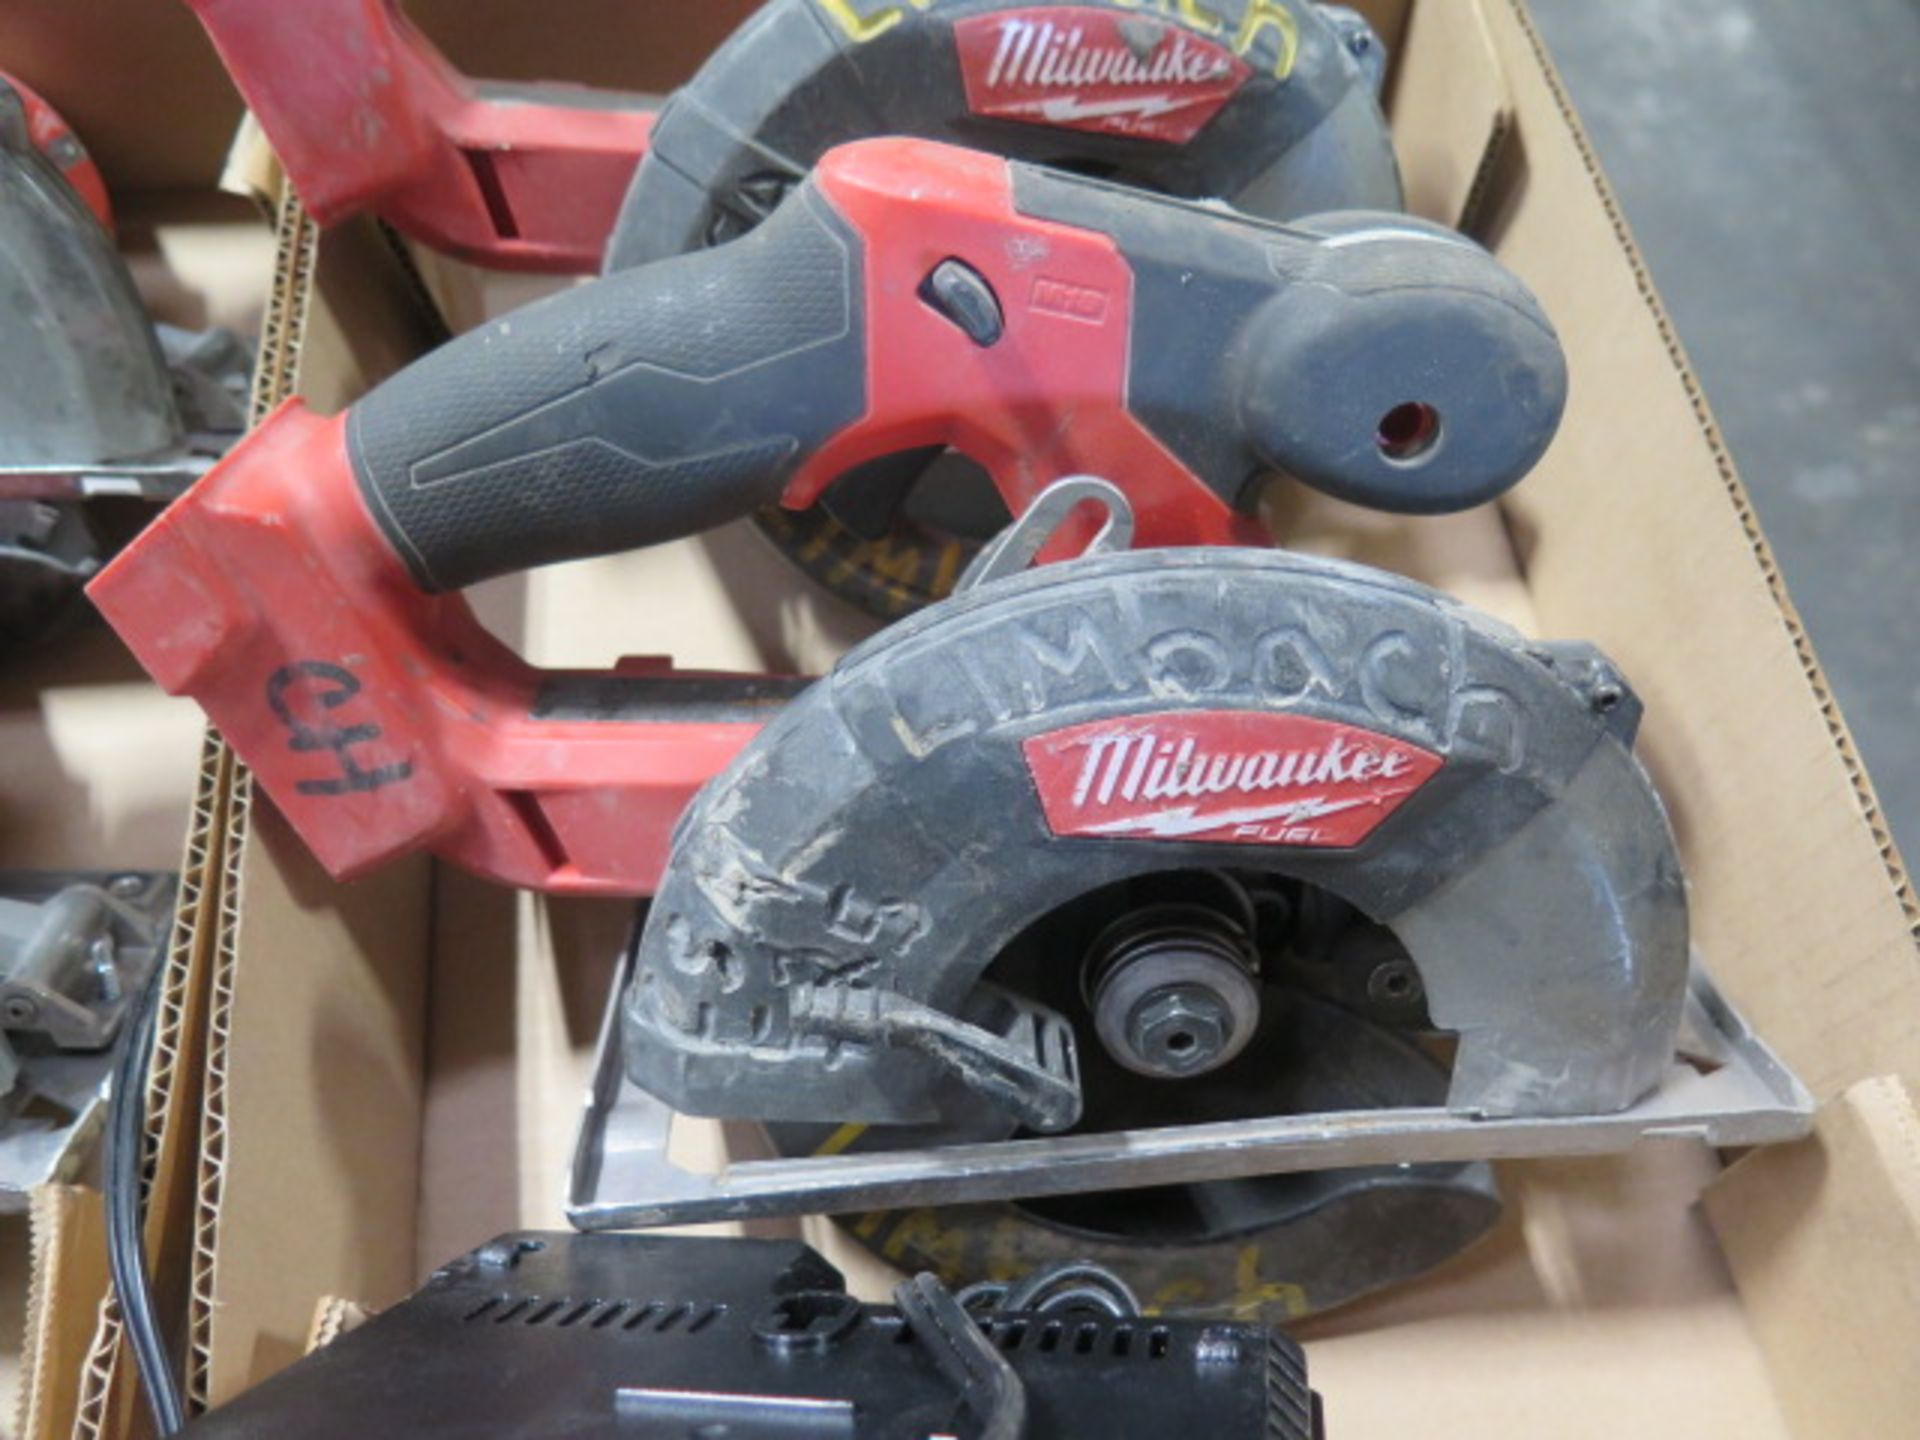 Milwaukee 18 Volt Circular Saws (2) (SOLD AS-IS - NO WARRANTY) - Image 4 of 5